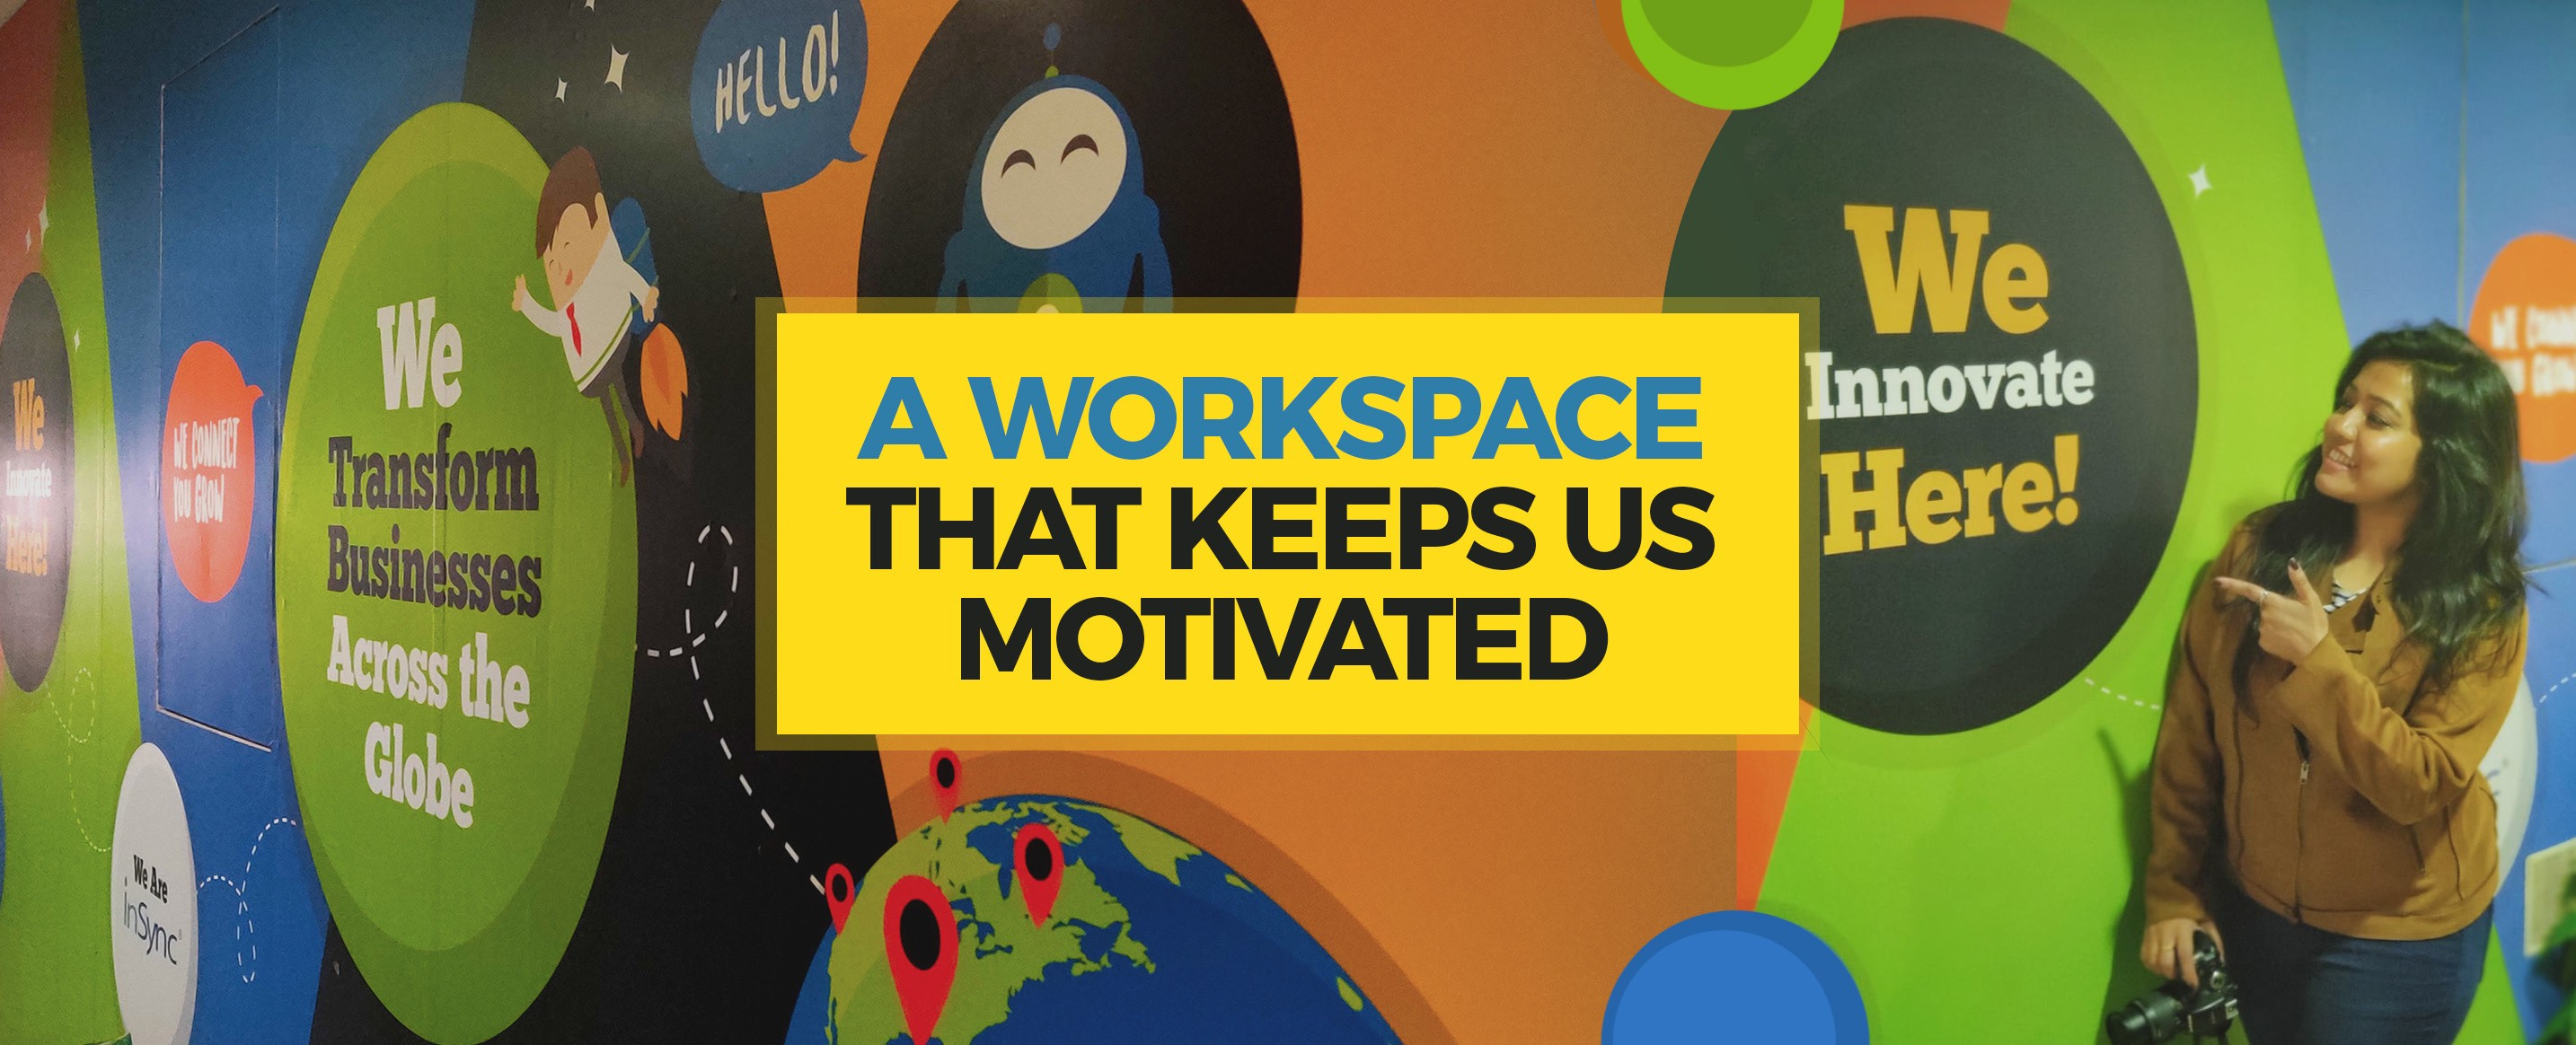 insync-with-superpowers-workspace-that-motivates